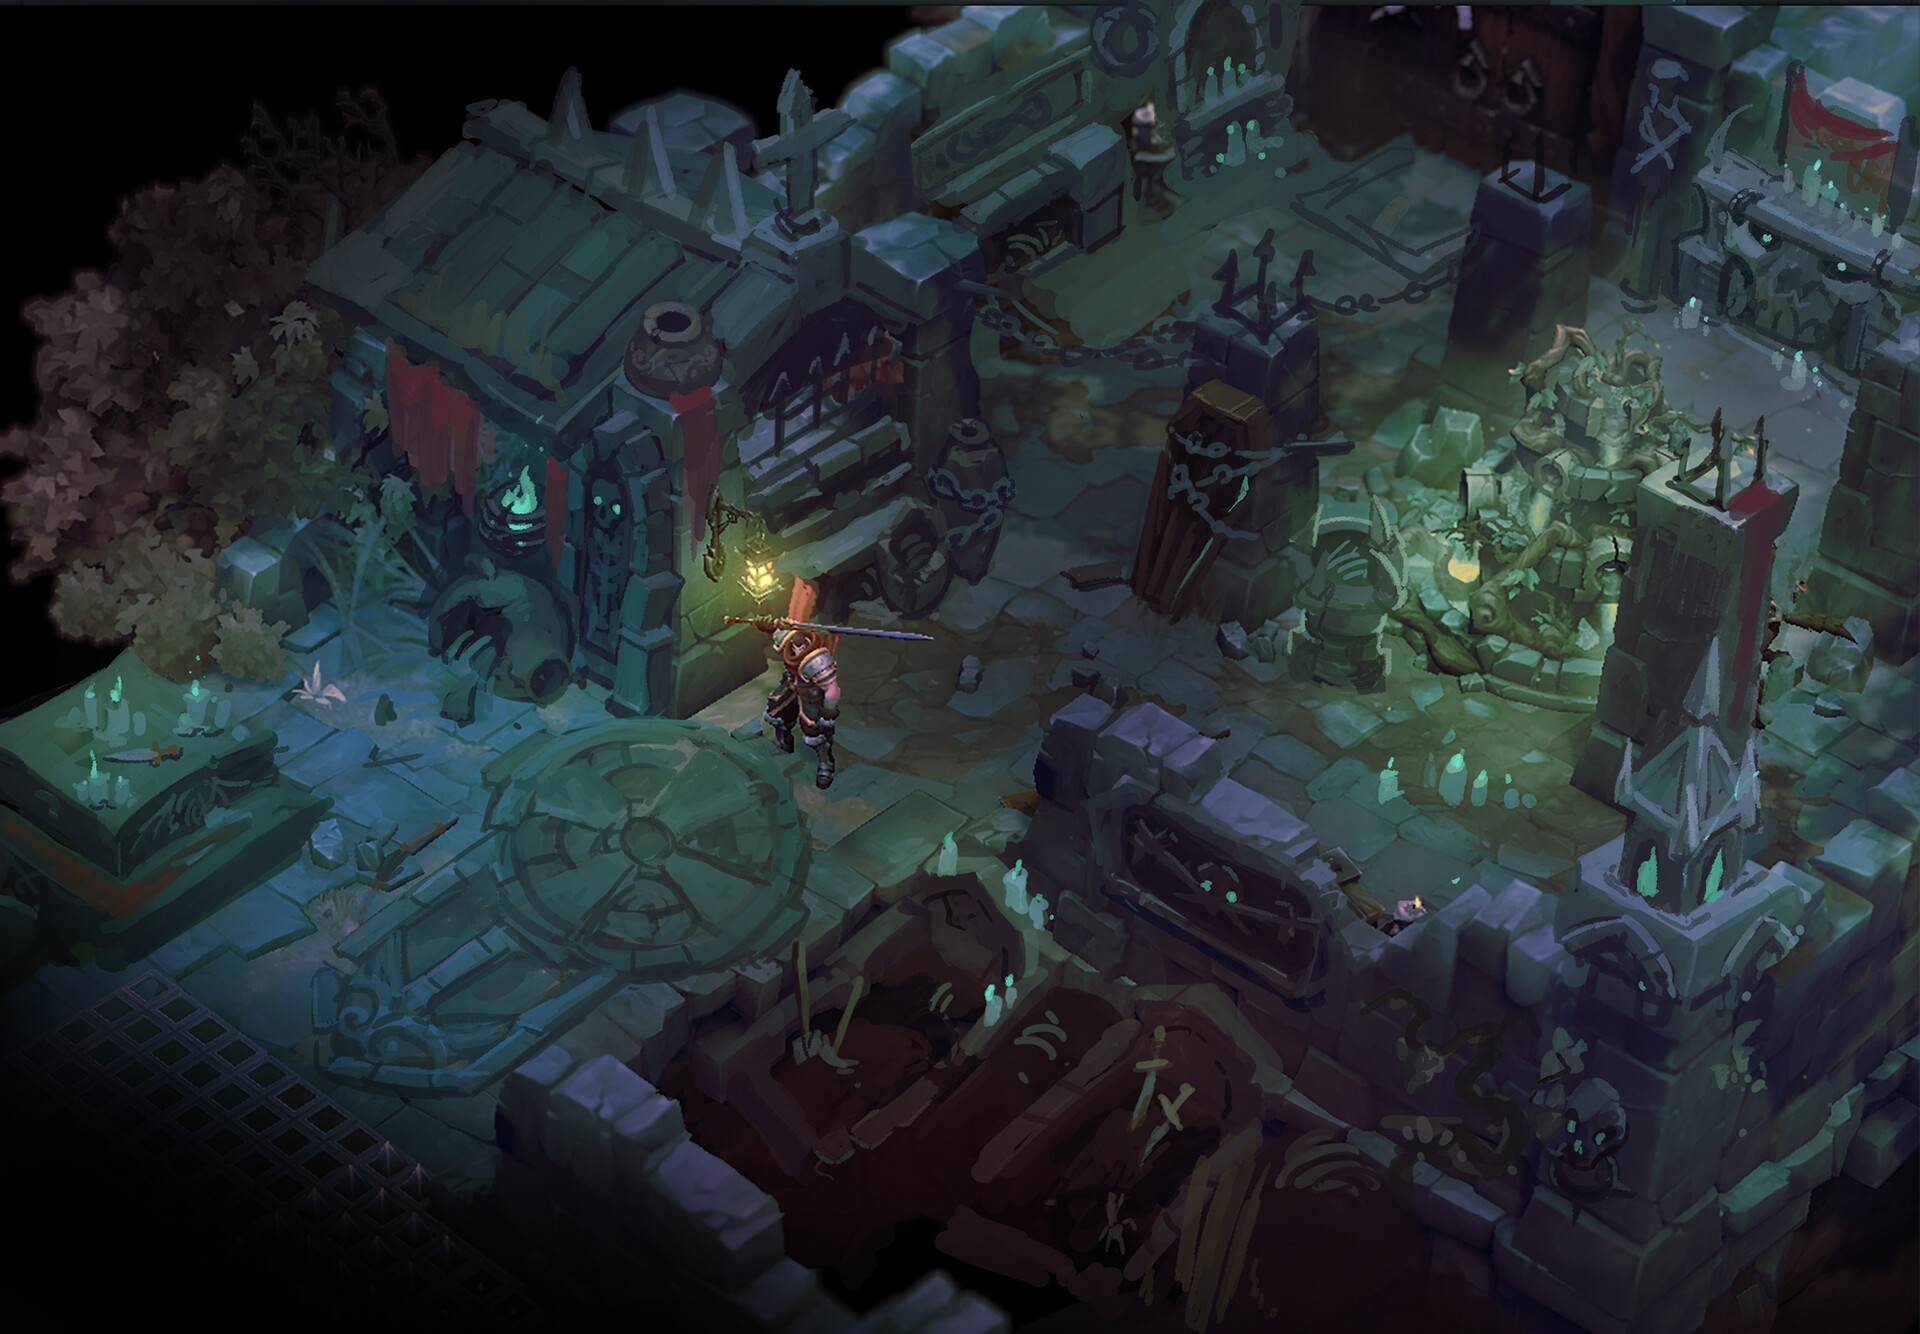 Battle Chasers Concept Art